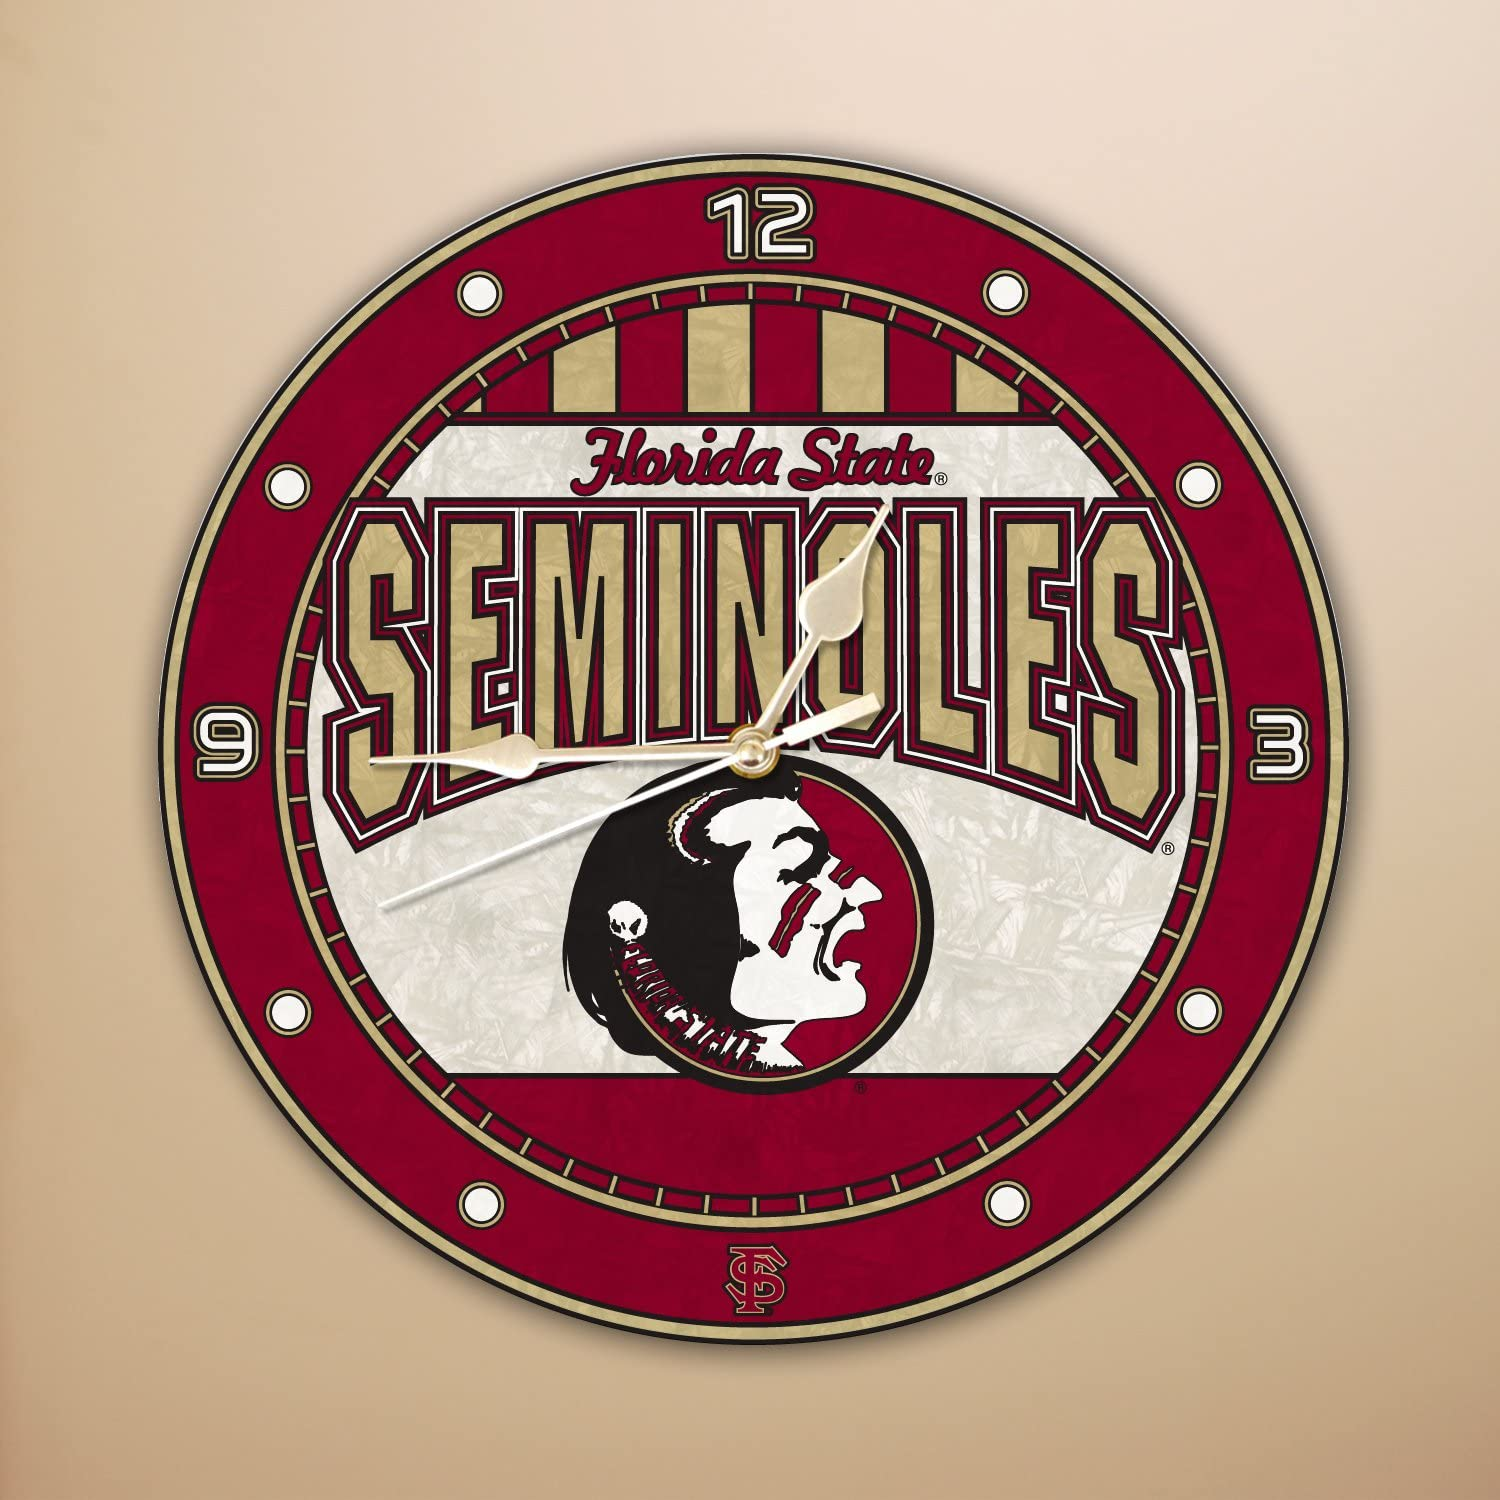 Memory Company Florida Challenge the lowest price of Japan ☆ State Seminoles Art 12in Max 83% OFF Clock Glass